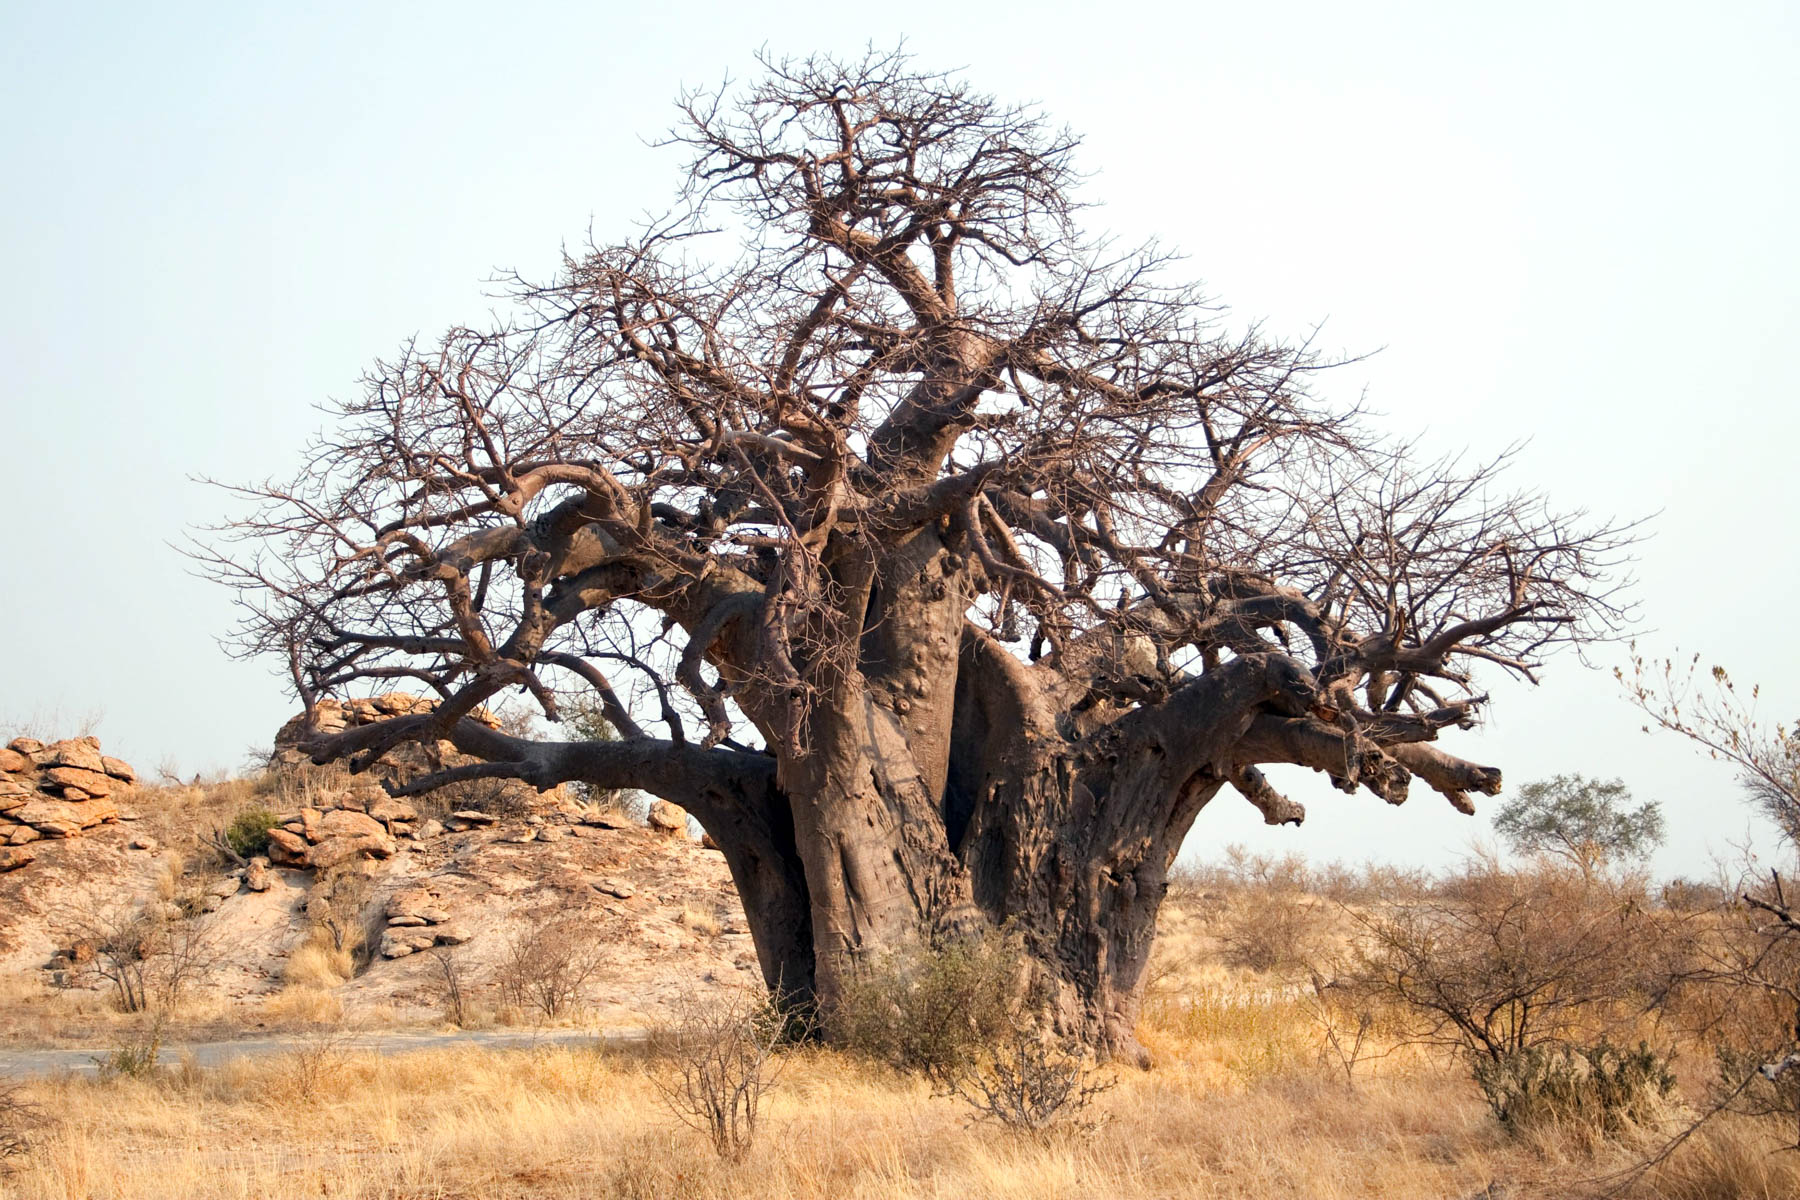 November 2010: The largest baobab in the Mapungubwe National Park. (Photograph by Gallo Images/ Go!/ Villiers Steyn)